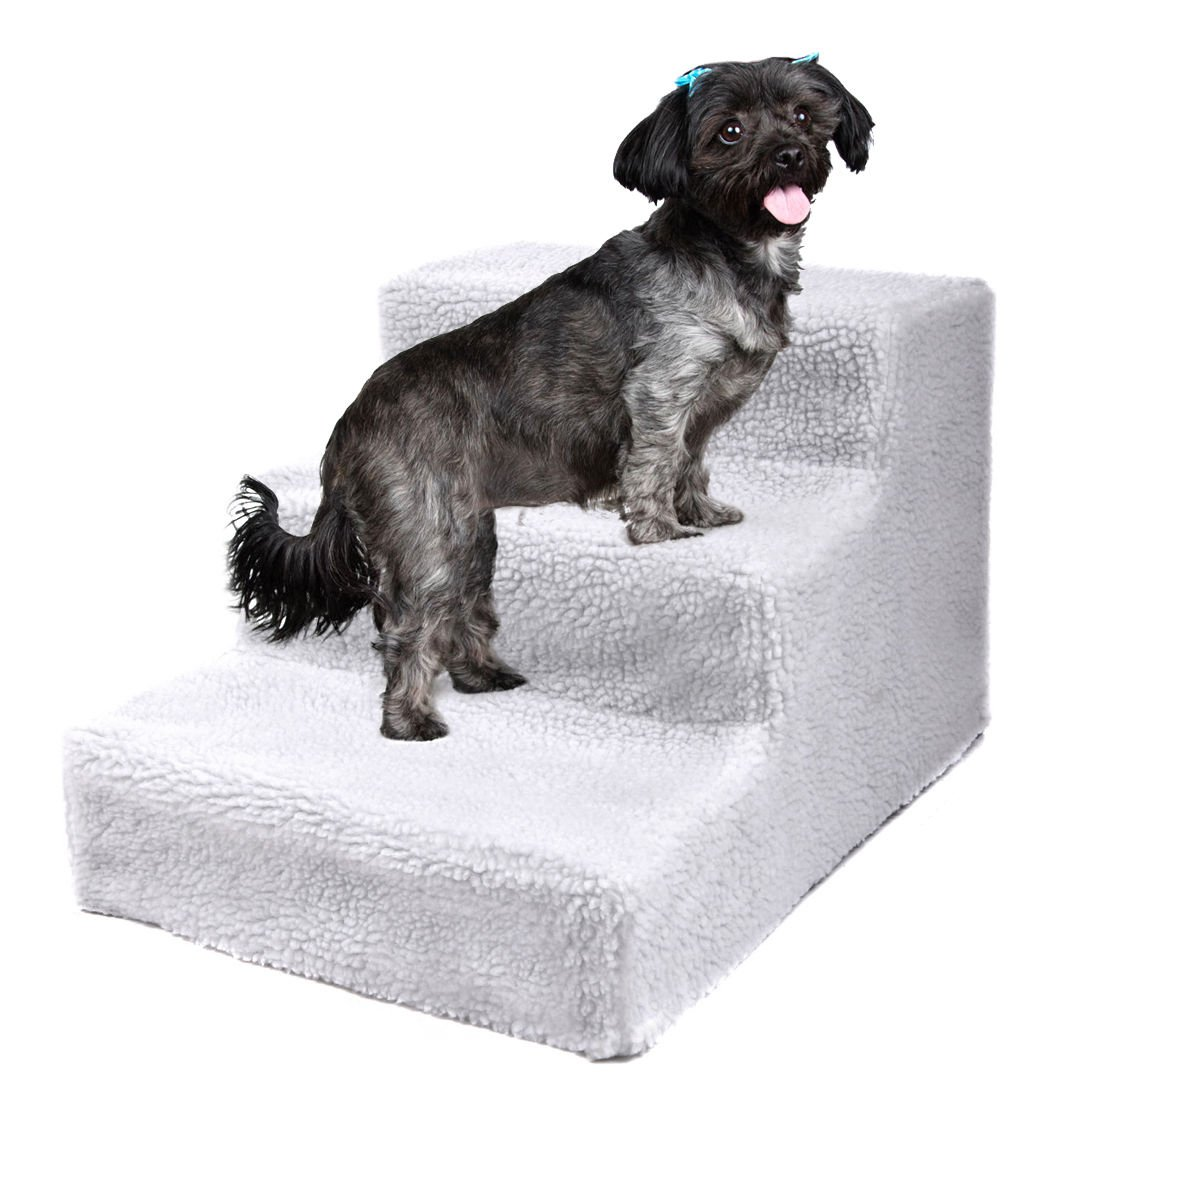 JAXPETY Animals Favorite Pet Stairs, 3 Steps Ramp Ladder for Dogs, Portable, Ladder with Cover Indoor (White)